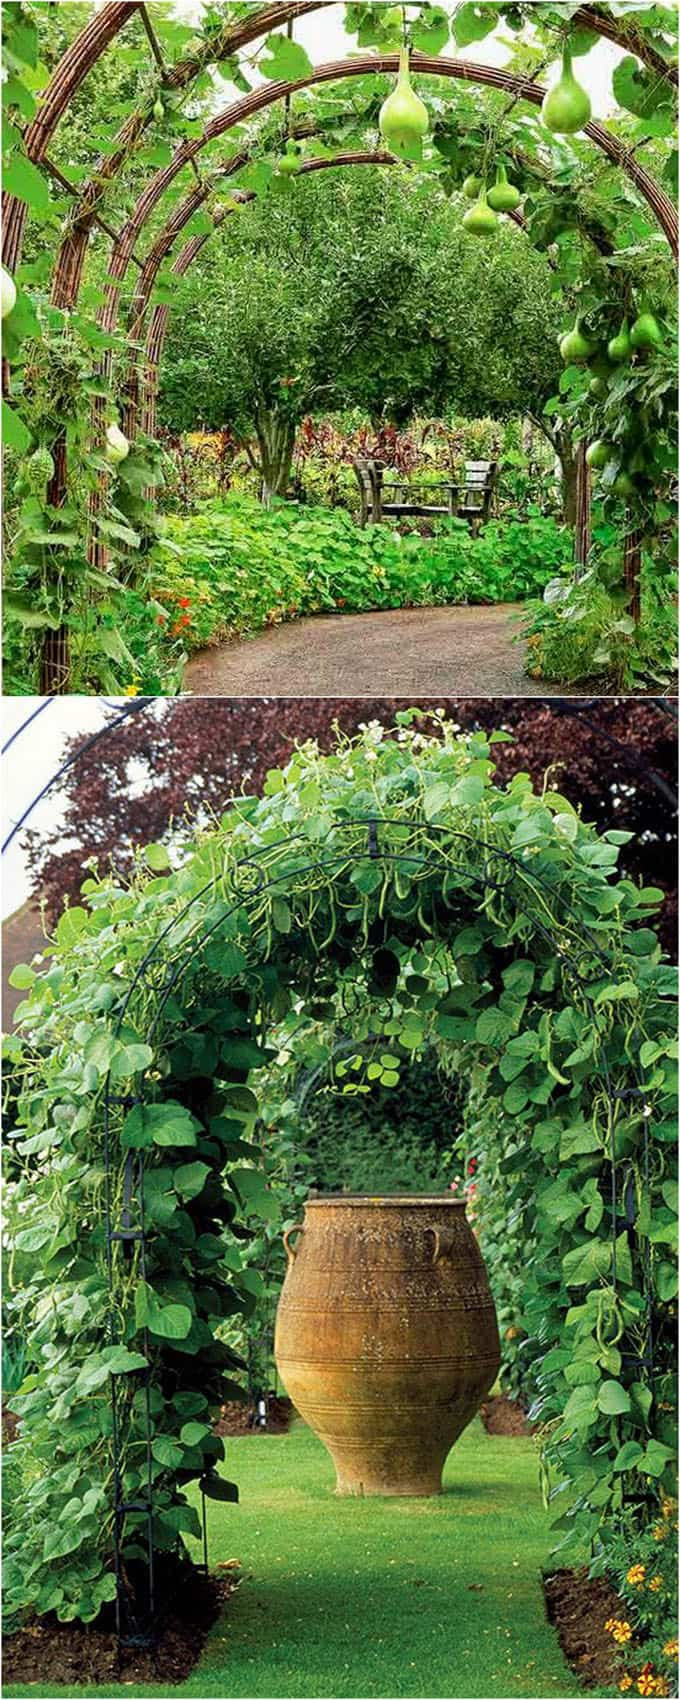 Simphome.com easy diy garden trellis ideas vertical growing structures a intended for 2020 2021 2022